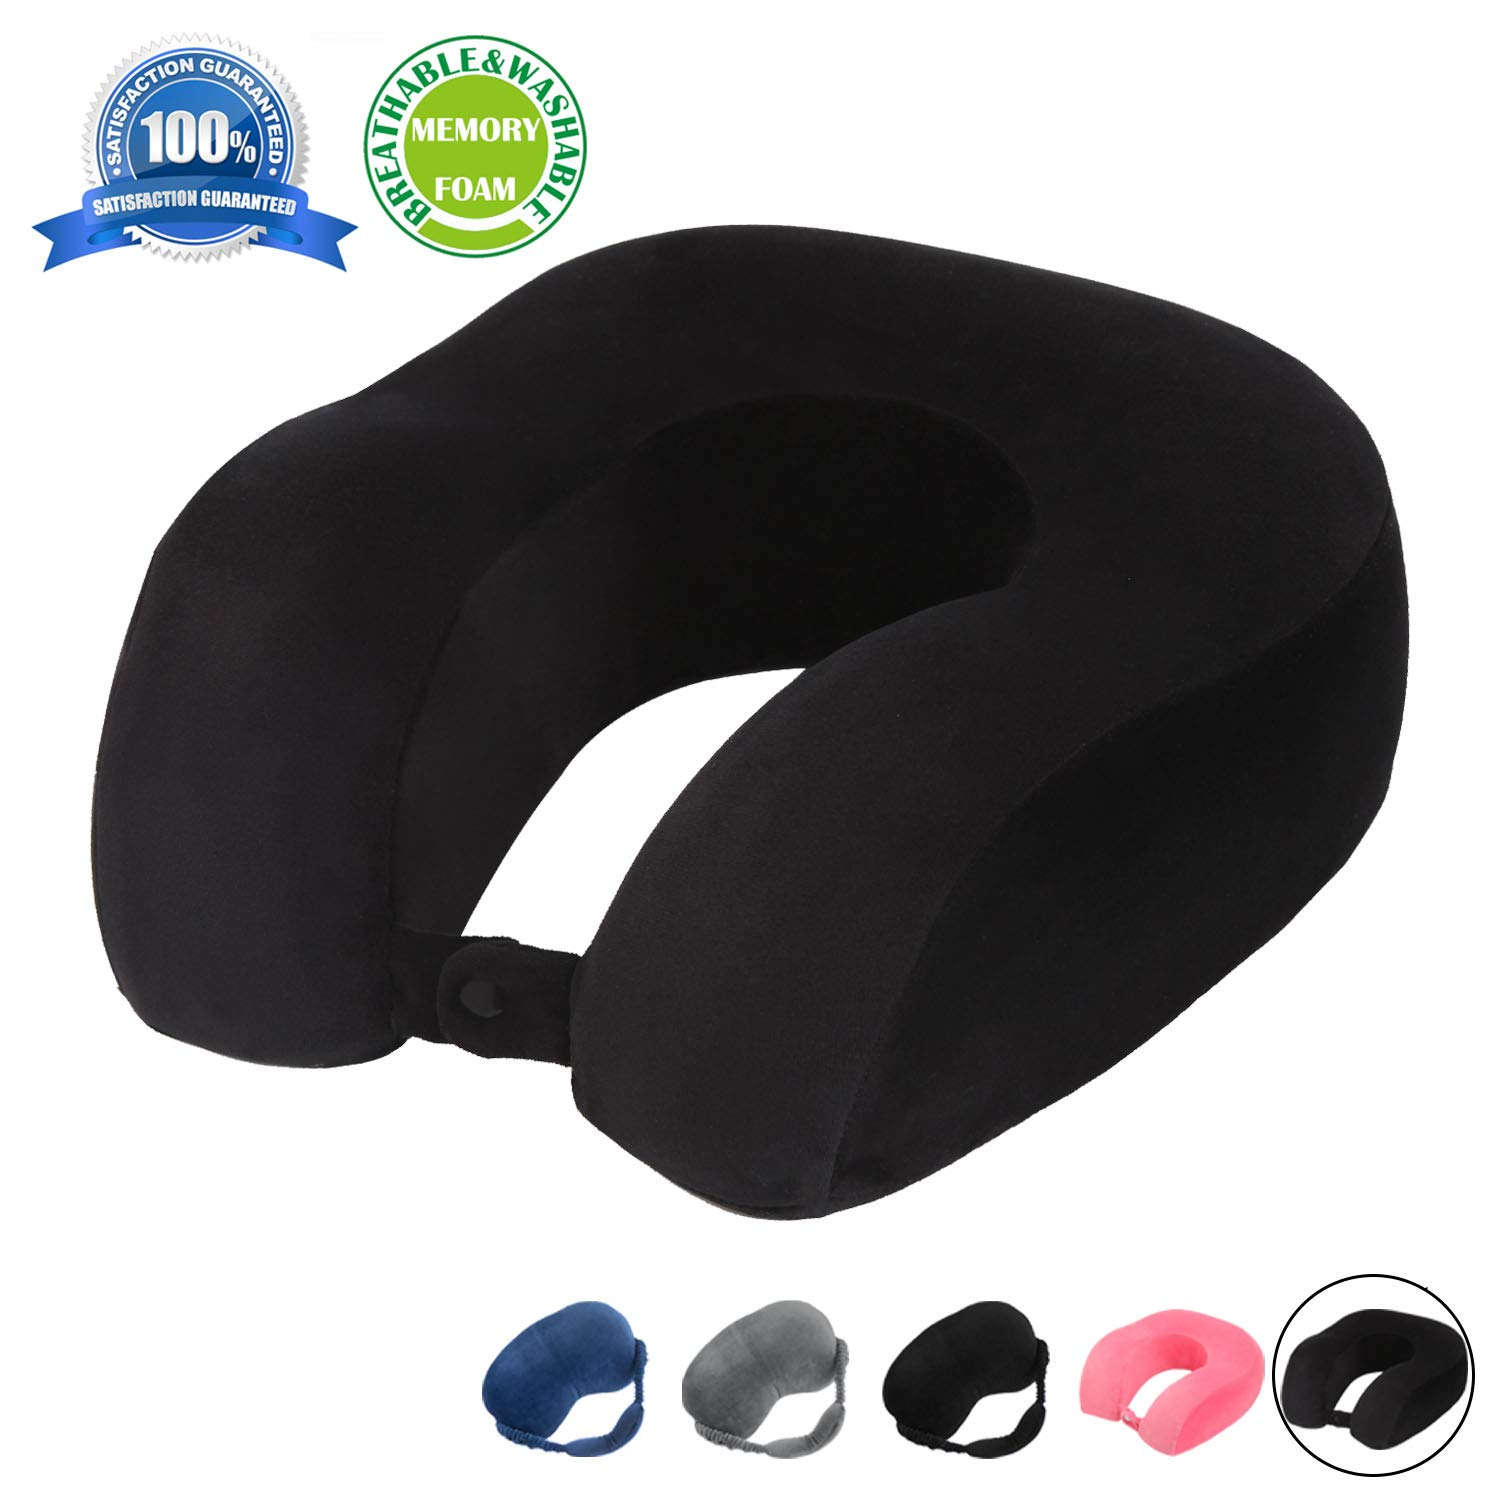 (Black) - HERIGGA Travel Neck Pillow Velvet Memory Foam Chin Support for Aeroplanes Trains Cars Office U Shaped Black B071QXGQM5 ブラック